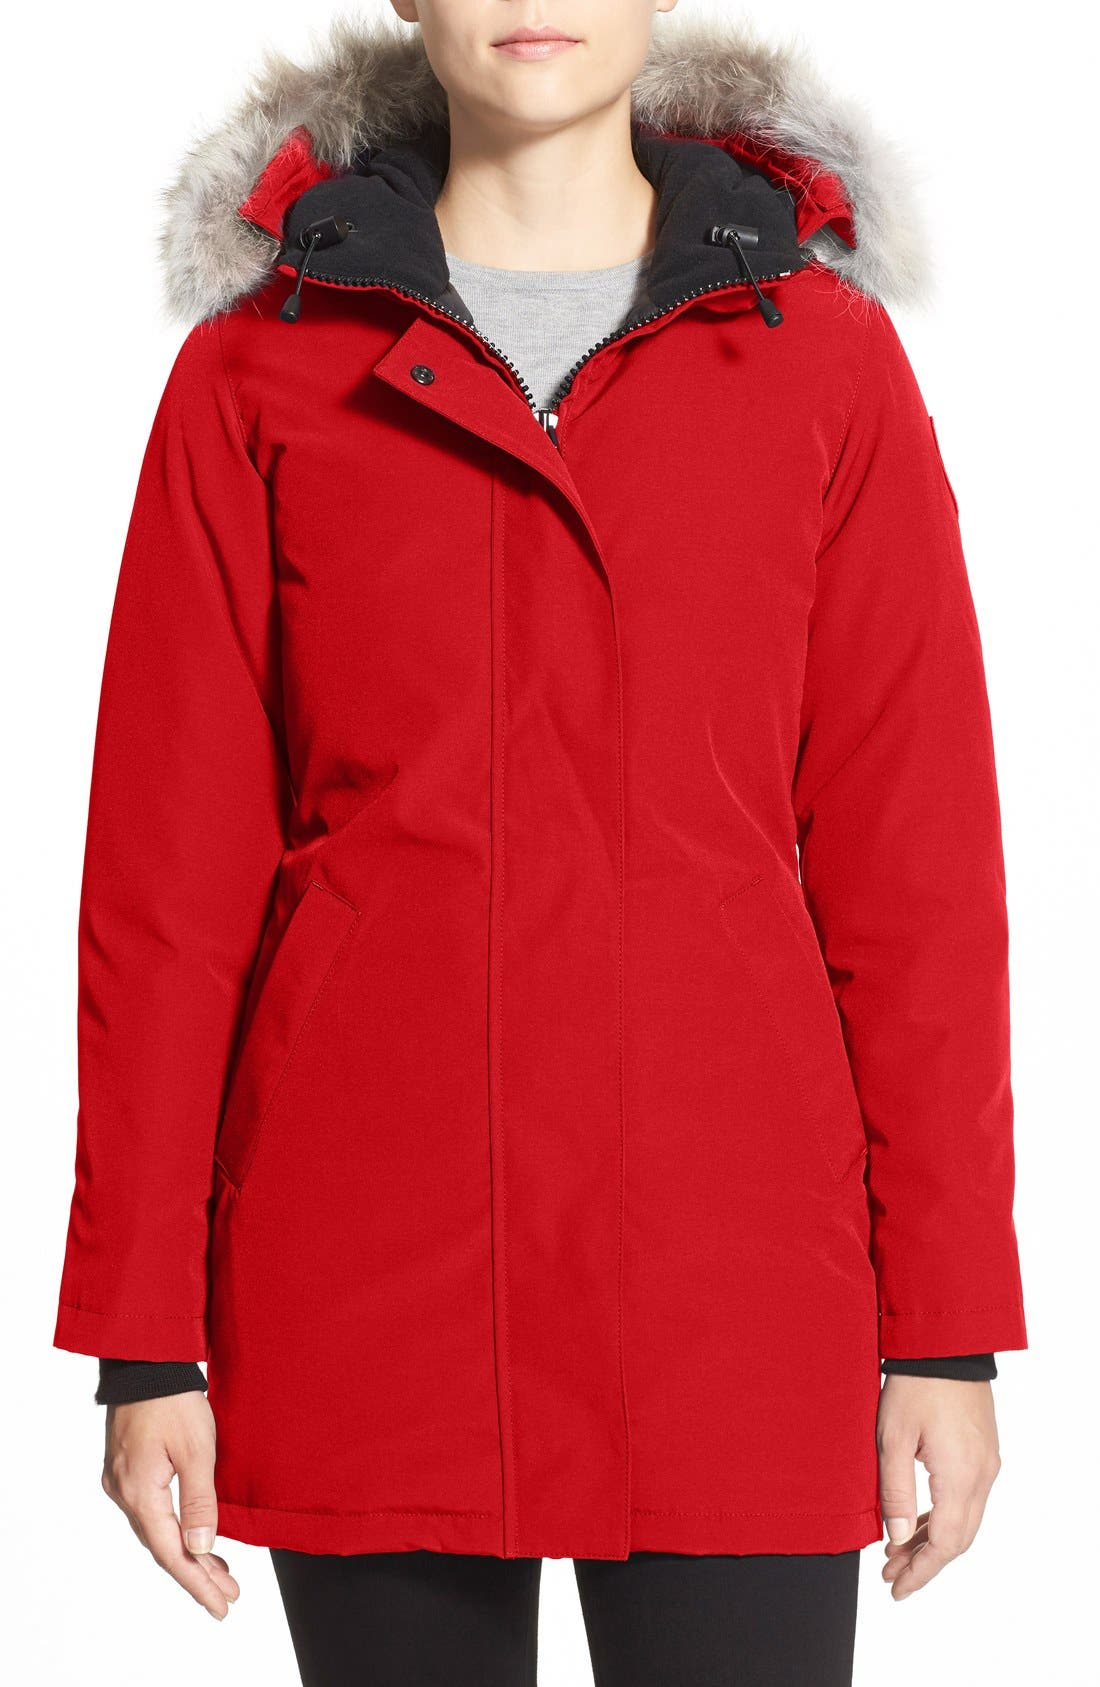 Women's Coats & Jackets: Puffer & Down | Nordstrom